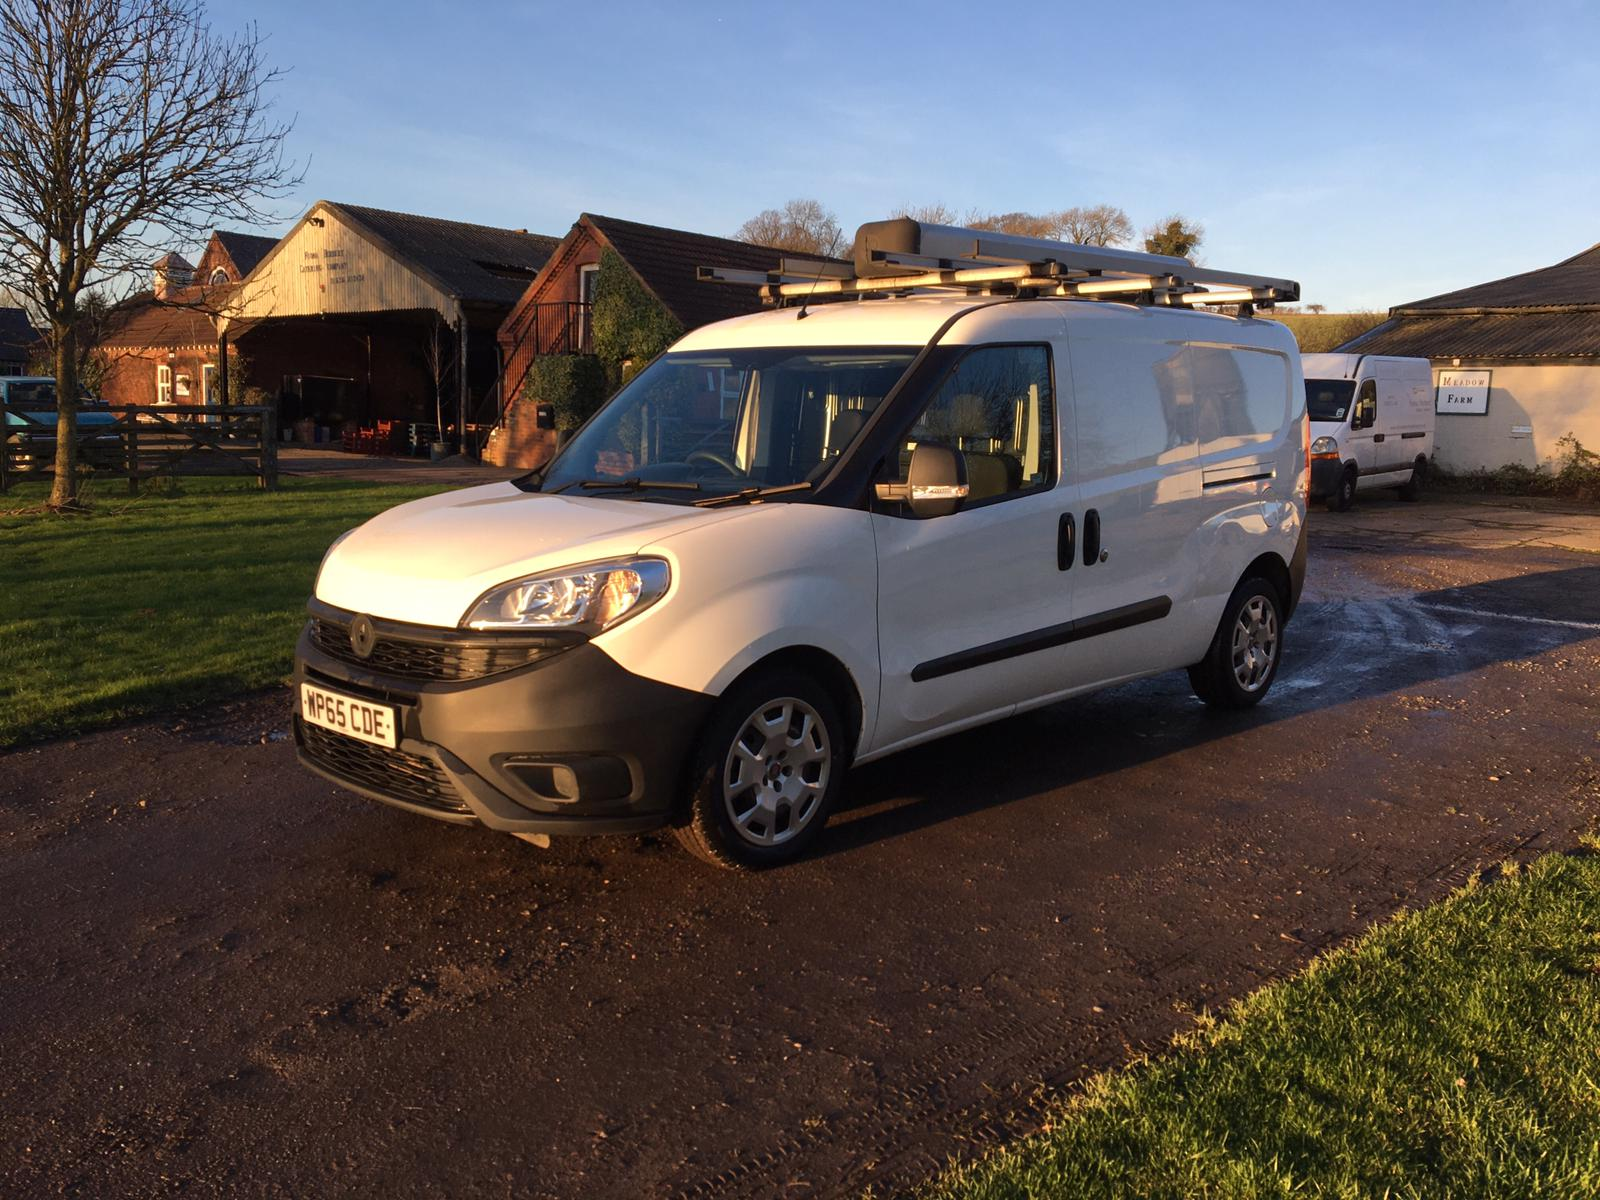 2015/65 REG FIAT DOBLO 16V MULTIJET 1.6 DIESEL WHITE PANEL VAN, SHOWING 0 FORMER KEEPERS *PLUS VAT* - Image 3 of 10